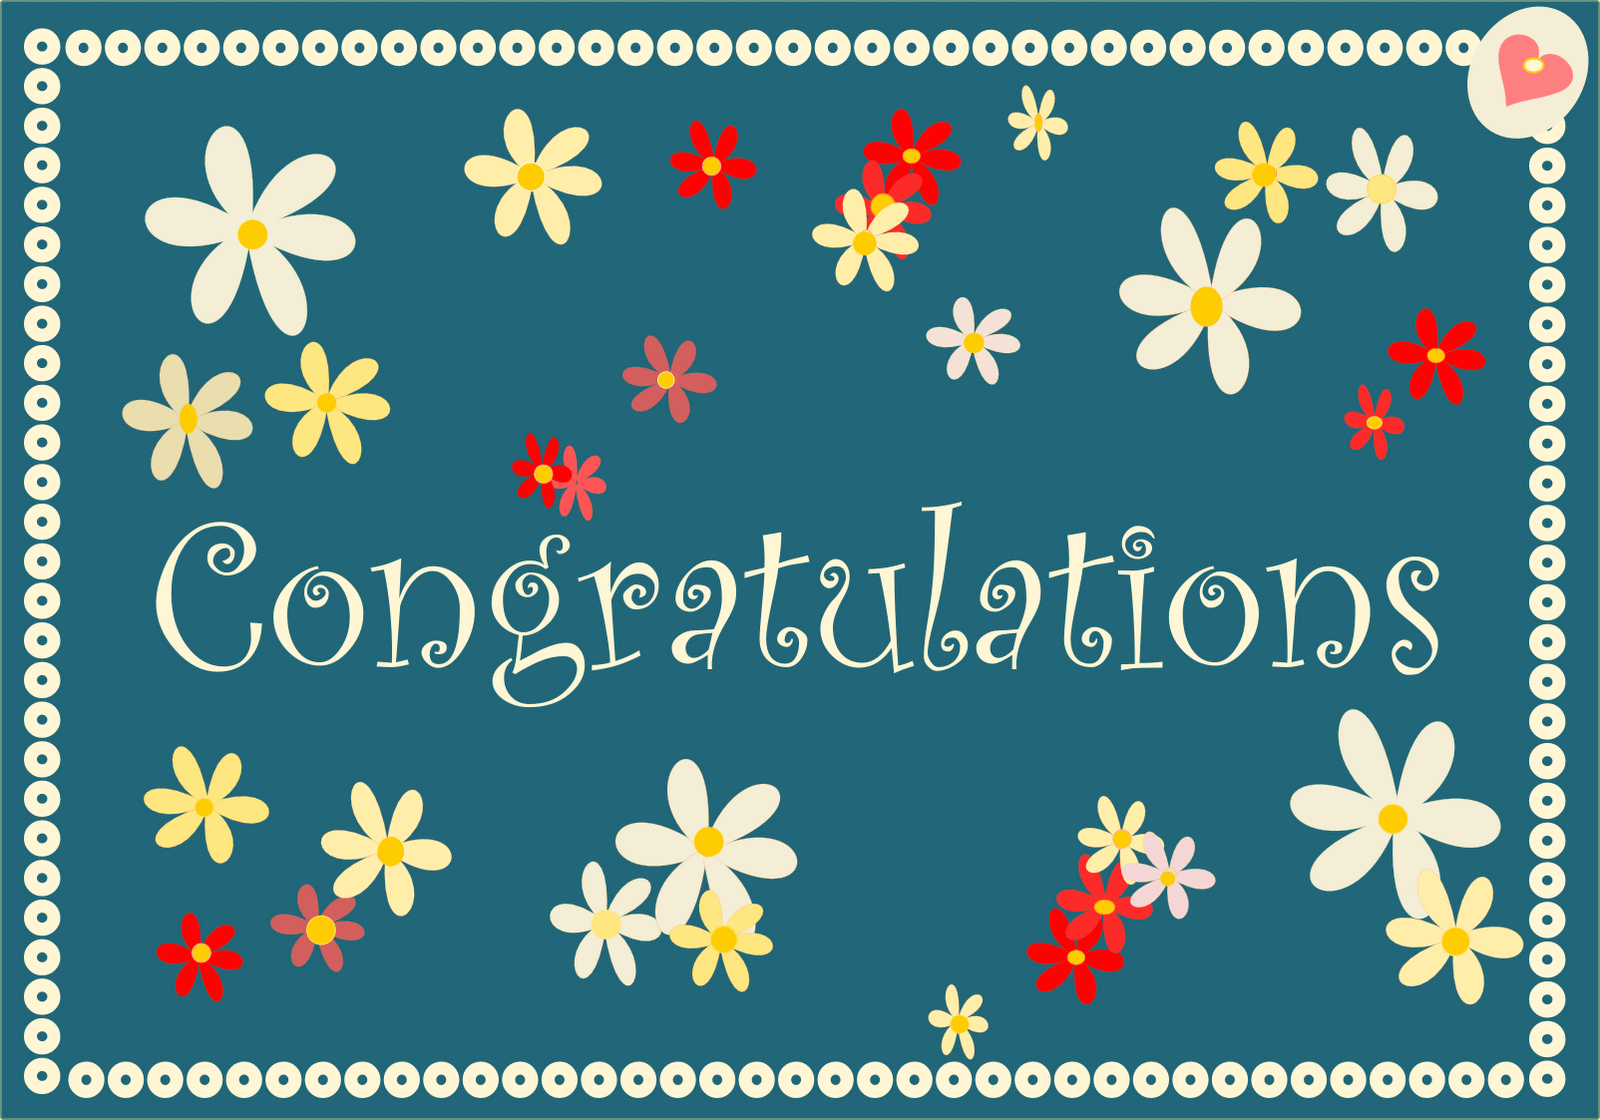 Congratulations Greetings E-Card Wishes